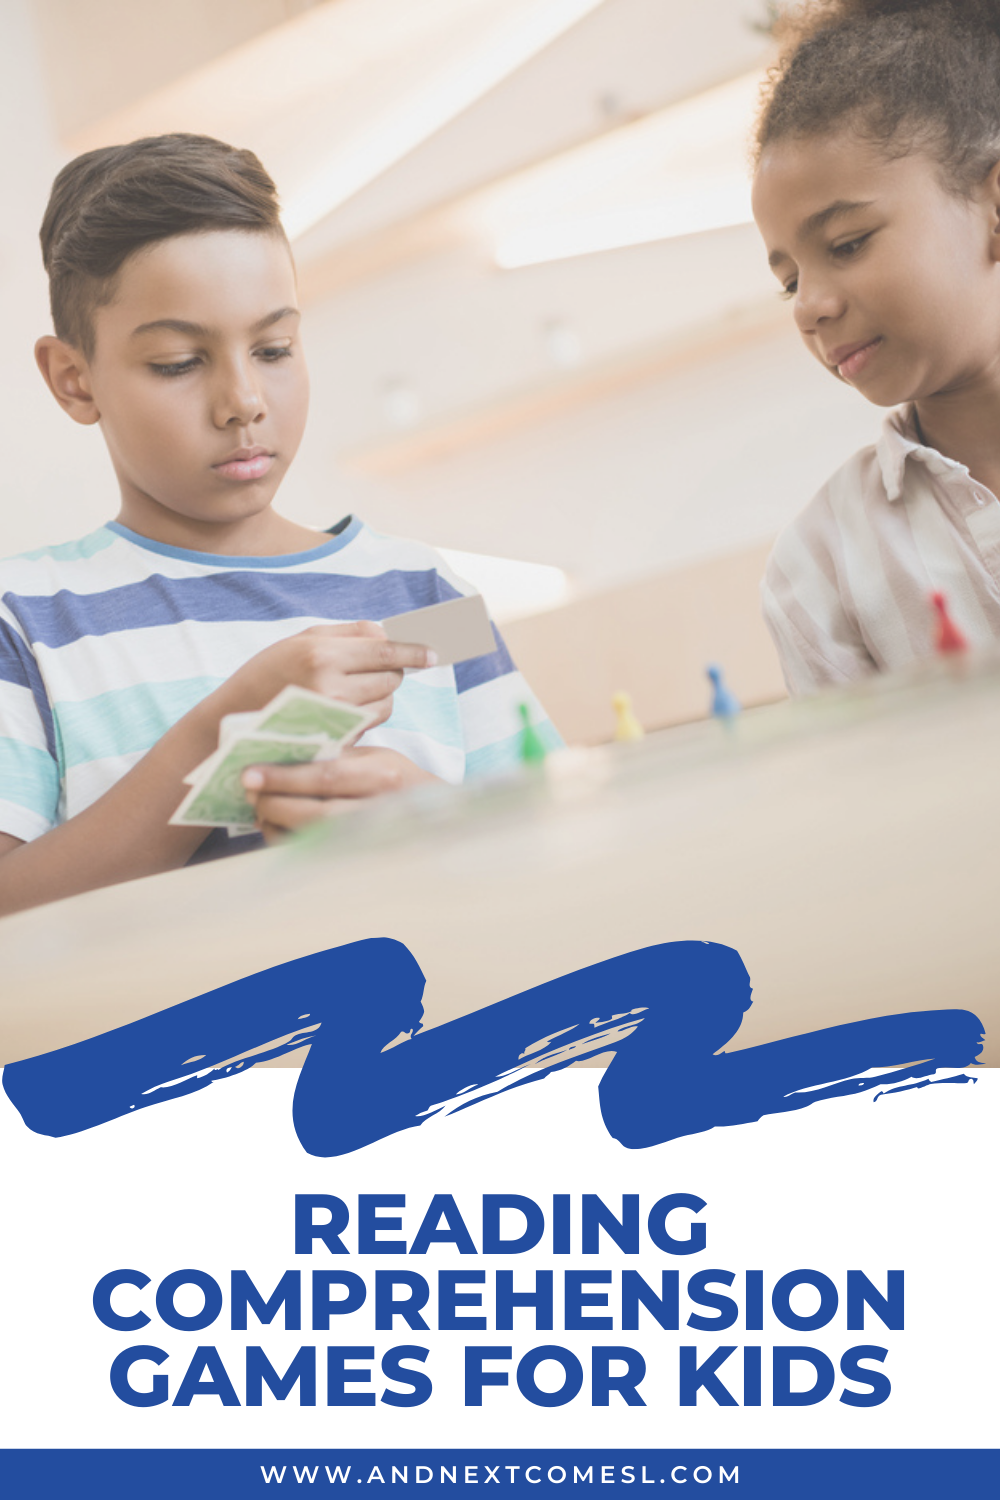 Reading comprehension games for kids - includes lots of free printables to help you improve comprehension skills!